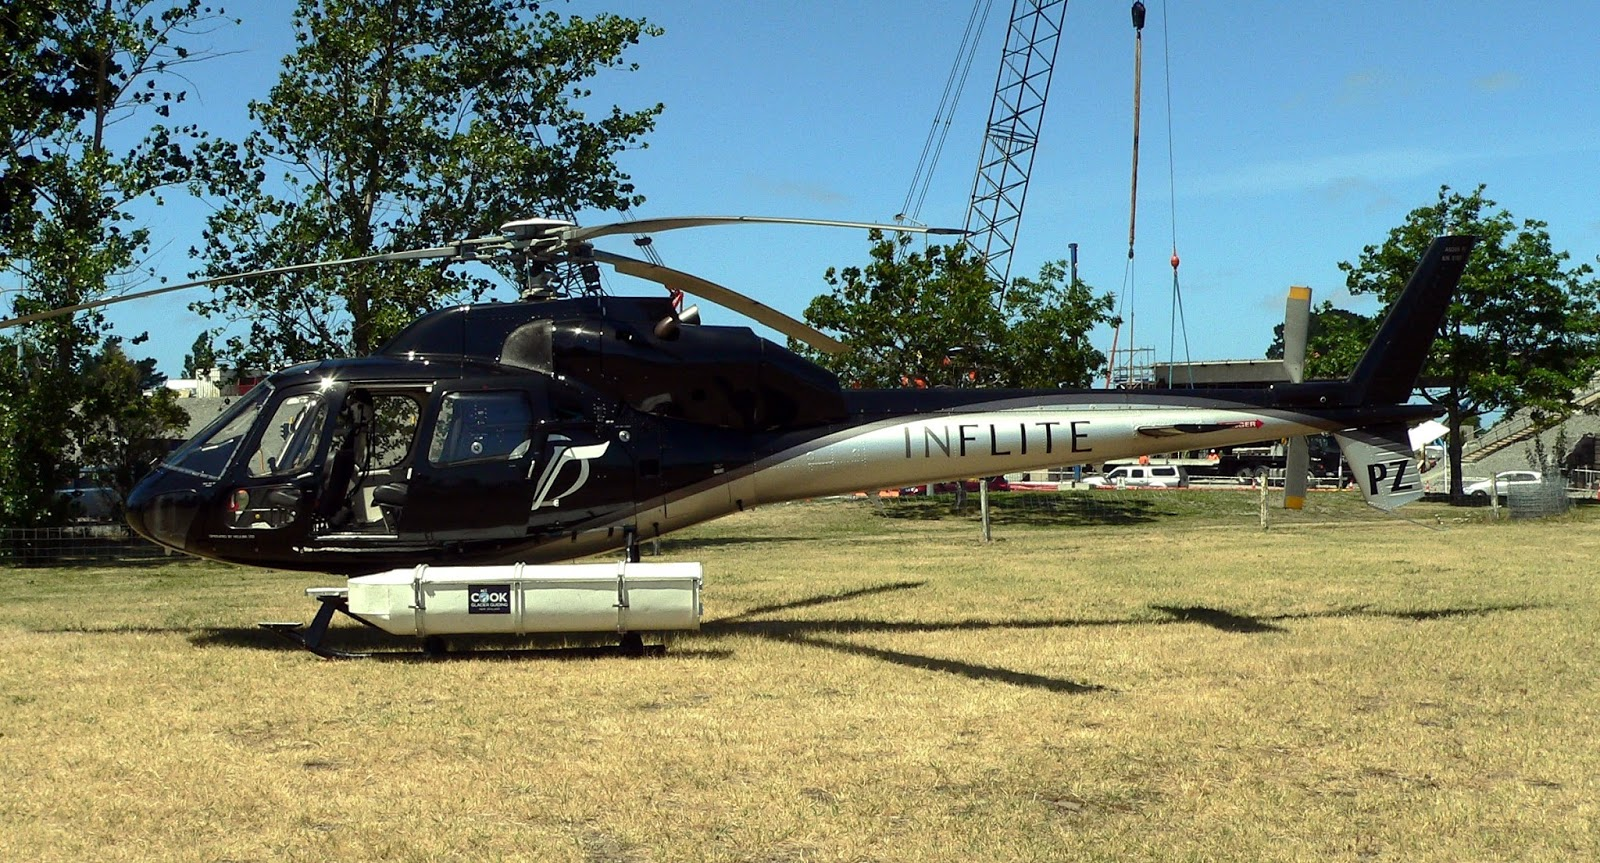 skywork helicopters with Recent Fling Wings At Christchurch 2 on Recent Fling Wings At Christchurch 2 as well Ms Blast And Paint also Tortoli Arbatax Airport Ttb Liet further Recent Fling Wings At Christchurch 2 furthermore Grafton.